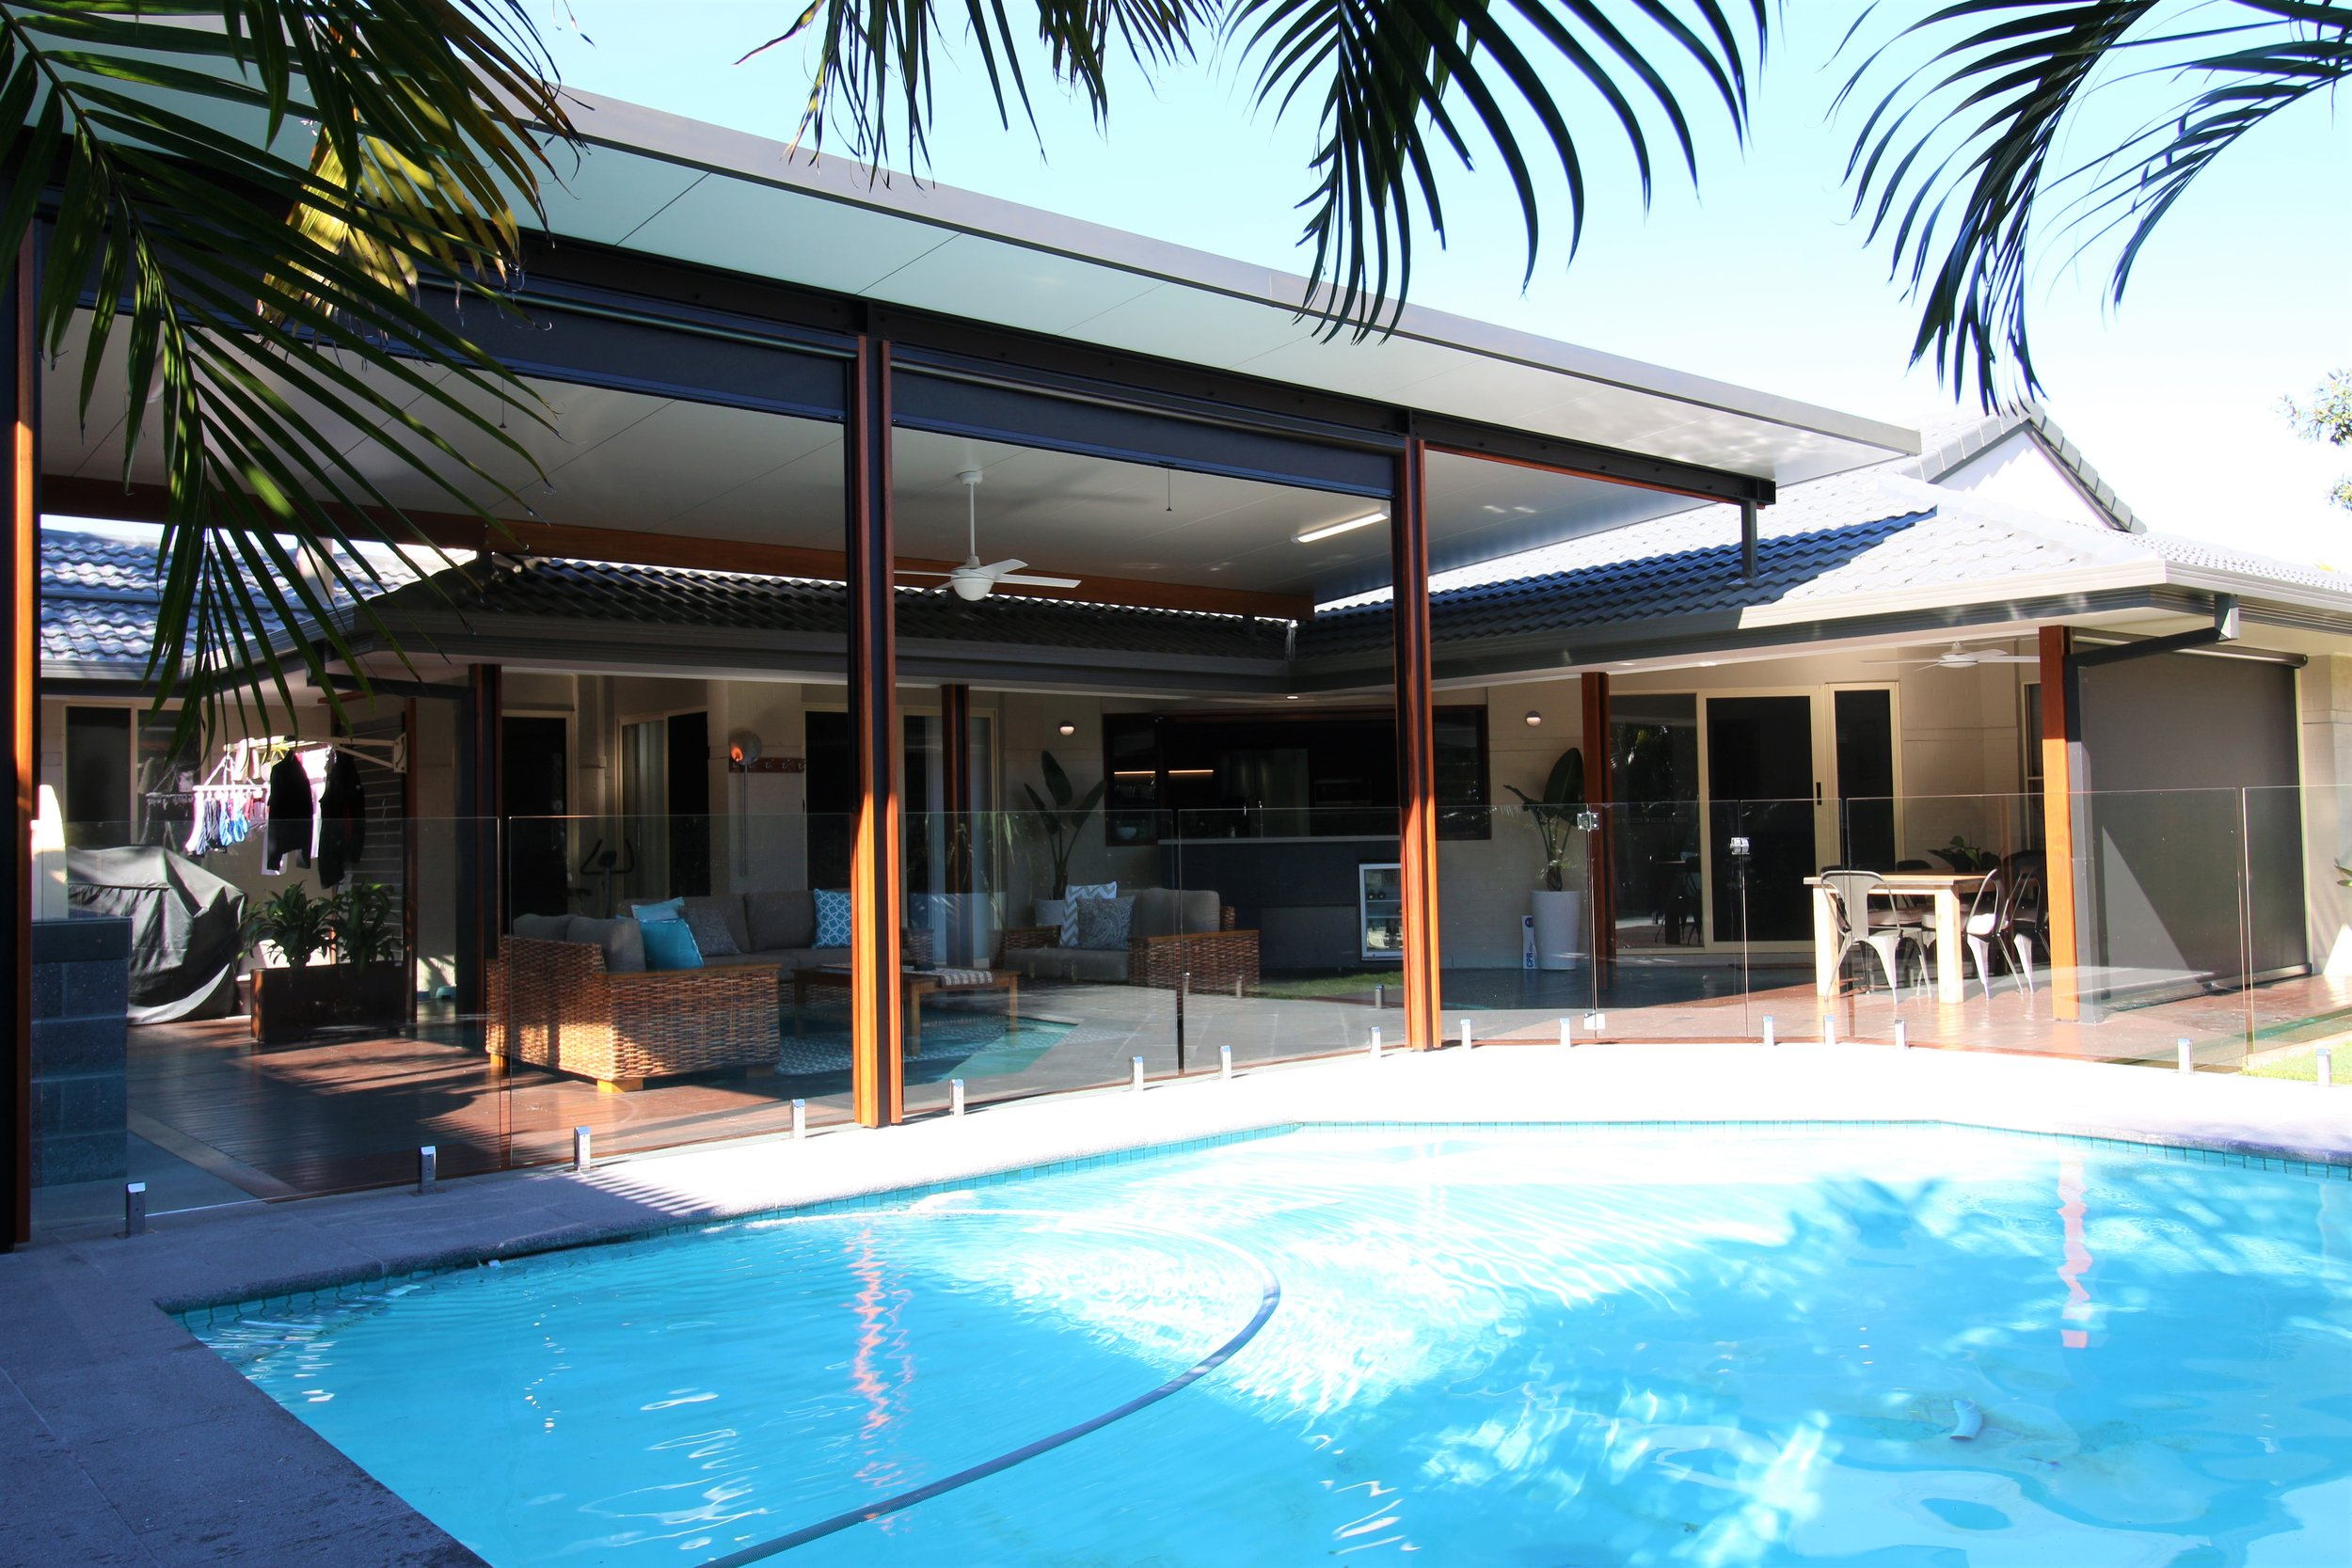 CARINDALE HOUSE EXTENSION